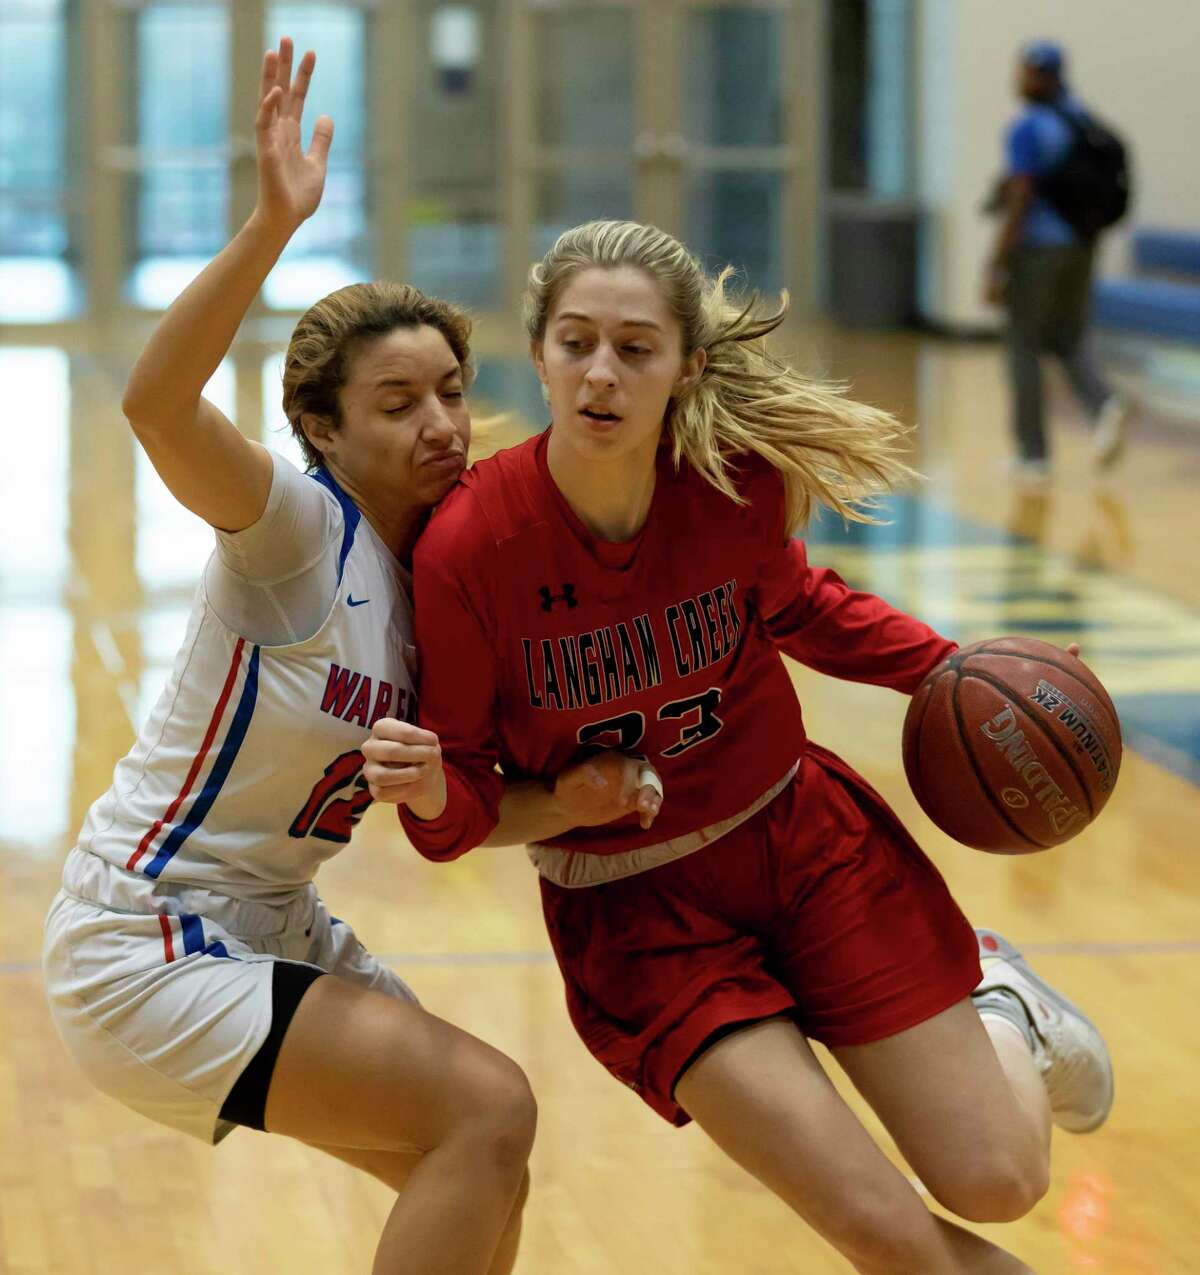 Langham Creek guard Kaley Perkins (23) dribbles the ball down the court while under pressure from Oak Ridge guard Mersadez Nephew (12) in a Region II-6A area girls basketball playoff during the first half at Klein high school, Tuesday, Feb. 21, 2020.